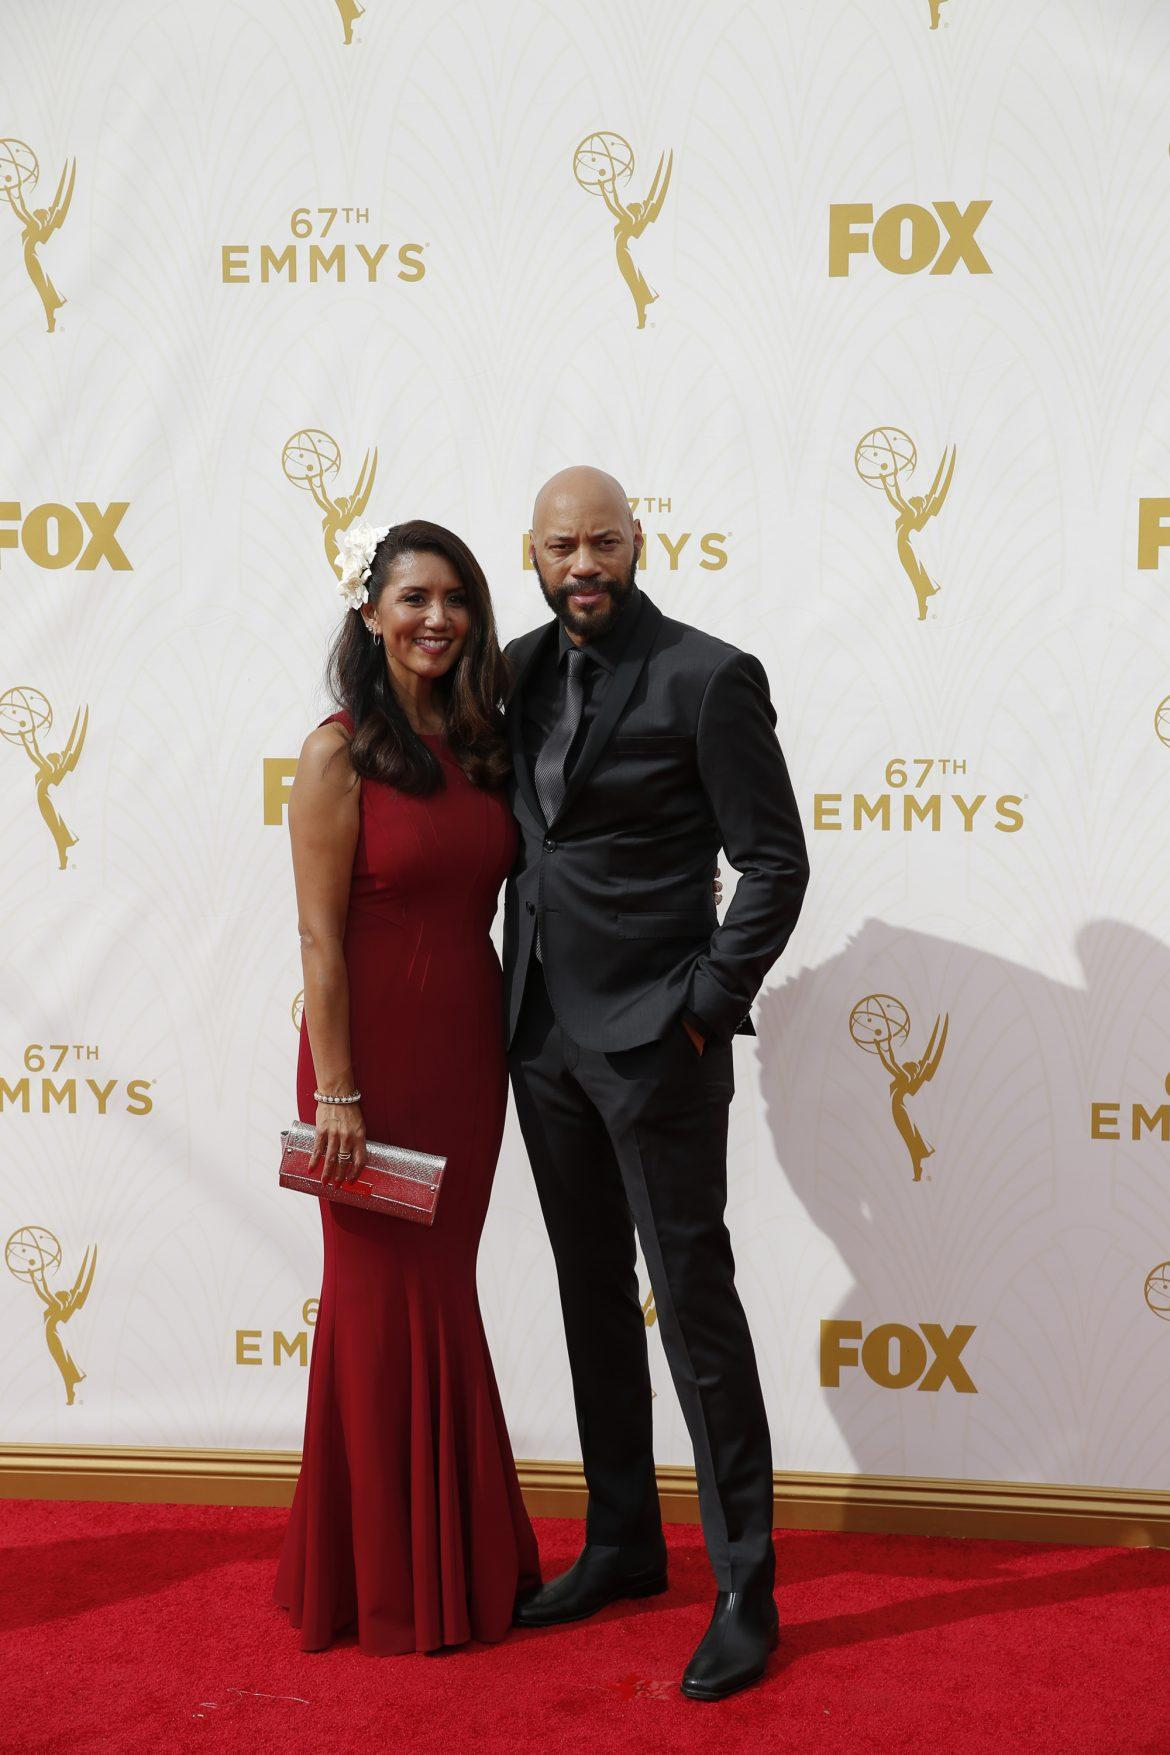 Gayle+and+John+Ridley+arrive+for+the+67th+Annual+Primetime+Emmy+Awards+at+the+Microsoft+Theater+in+Los+Angeles+on+Sunday%2C+Sept.+20%2C+2015.+%28Jay+L.+Clendenin%2FLos+Angeles+Times%2FTNS%29